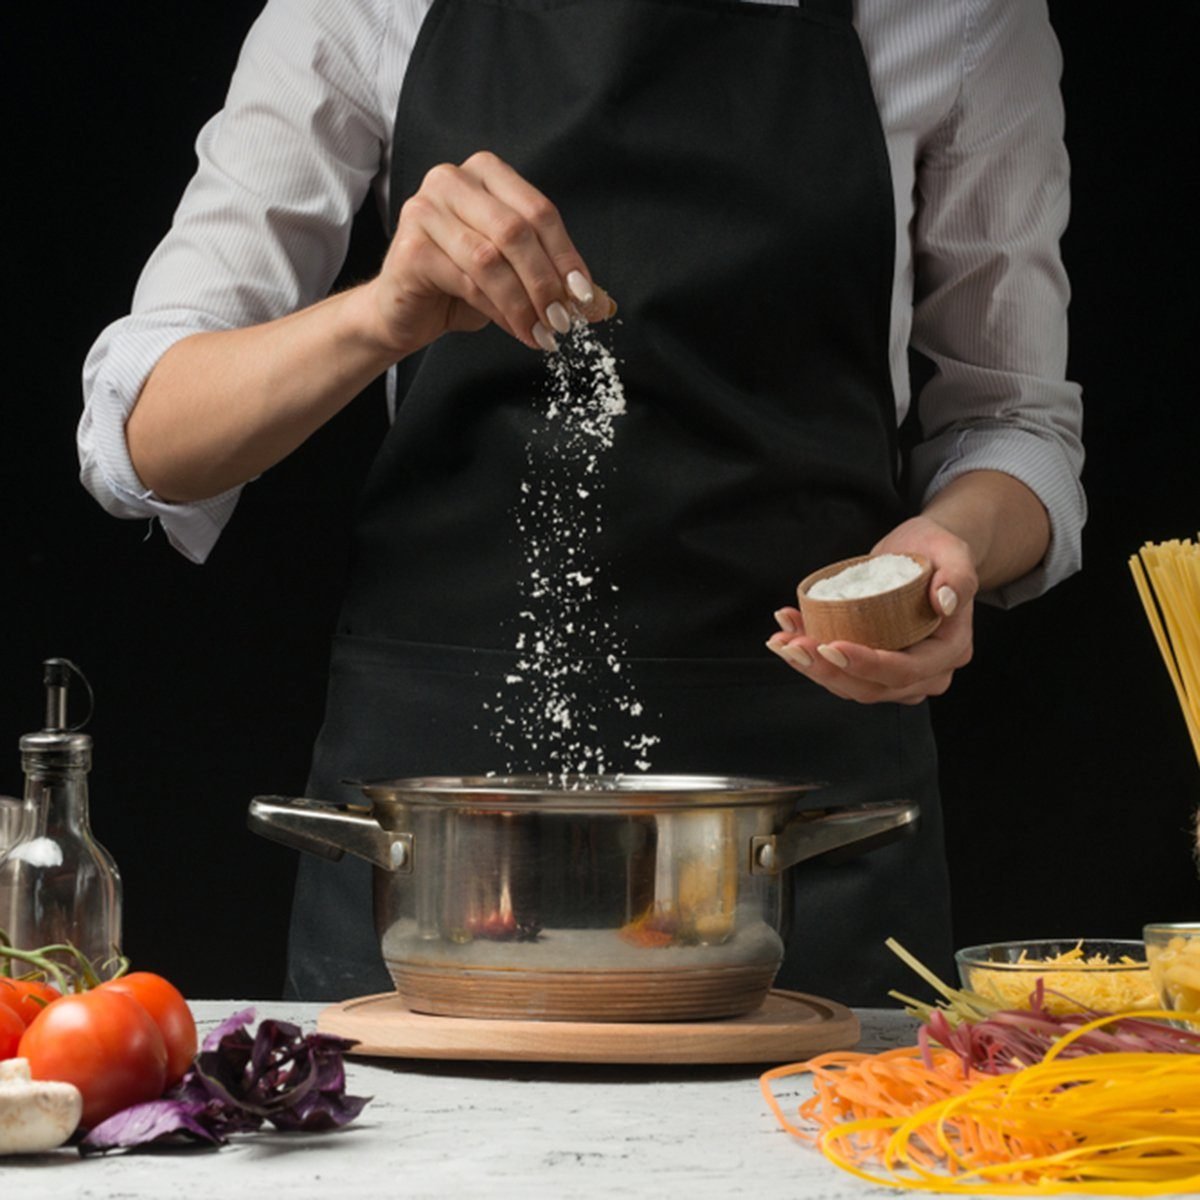 The chef prepares spaghetti and pasta, salt water, against a dark background